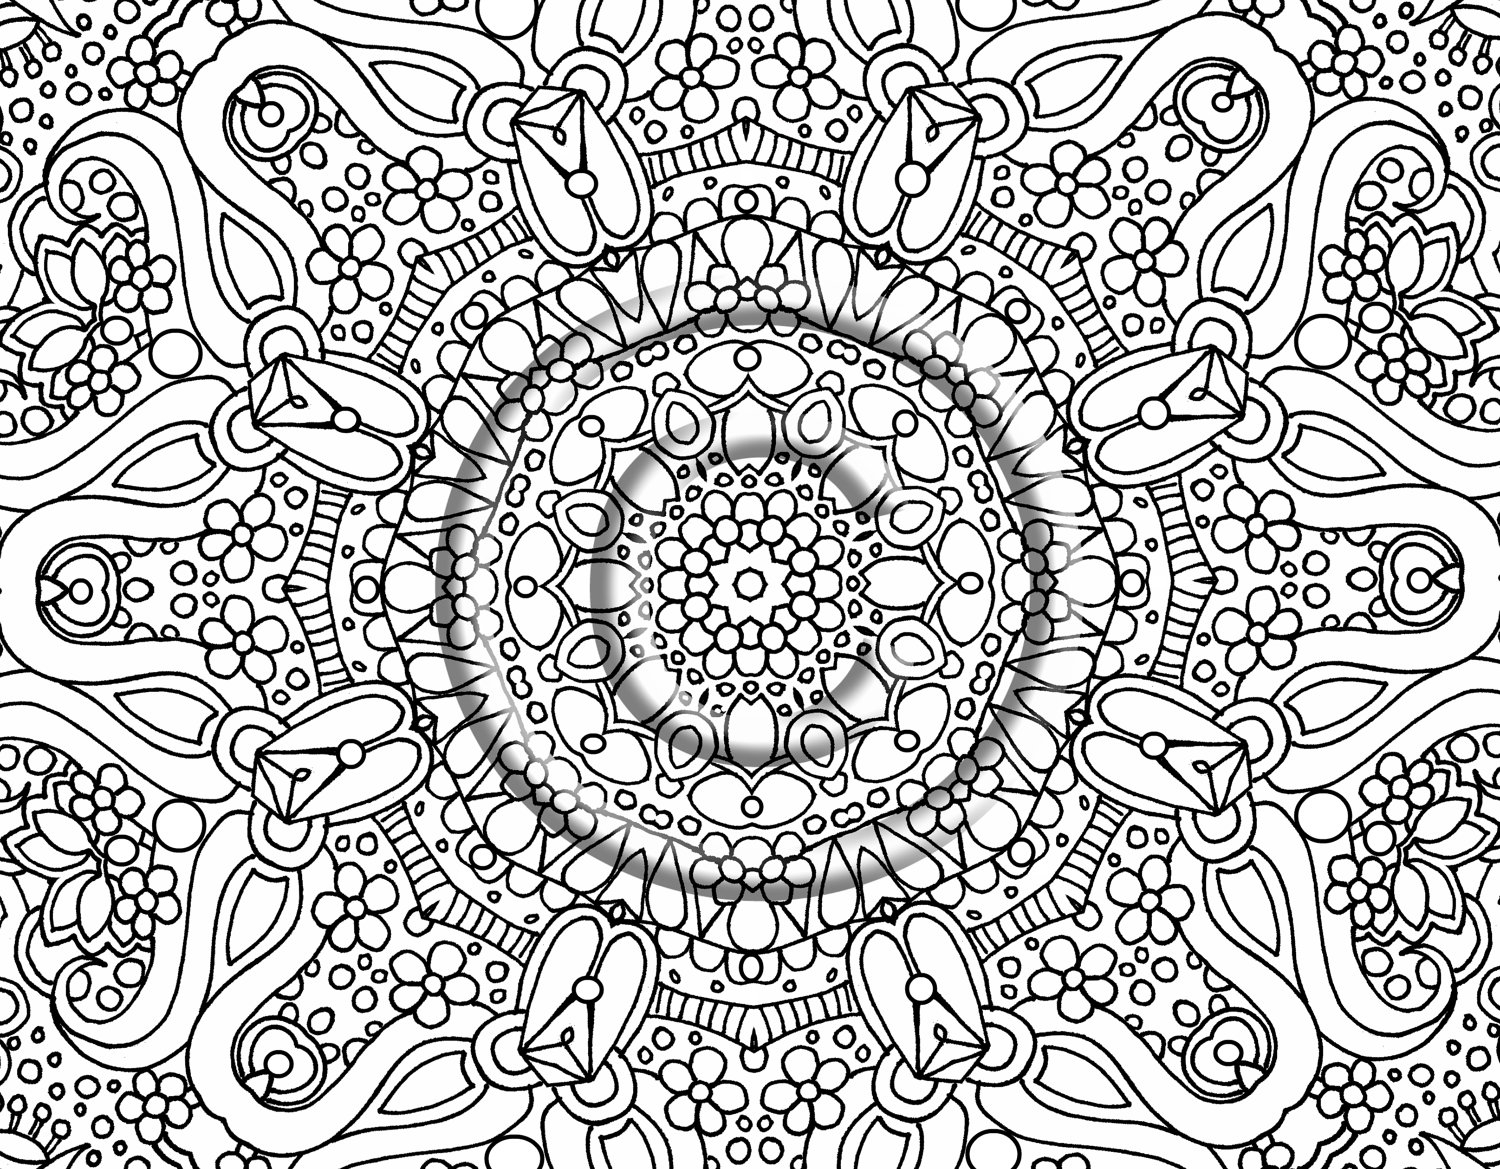 complicated coloring sheets difficult coloring pages for adults to download and print sheets coloring complicated